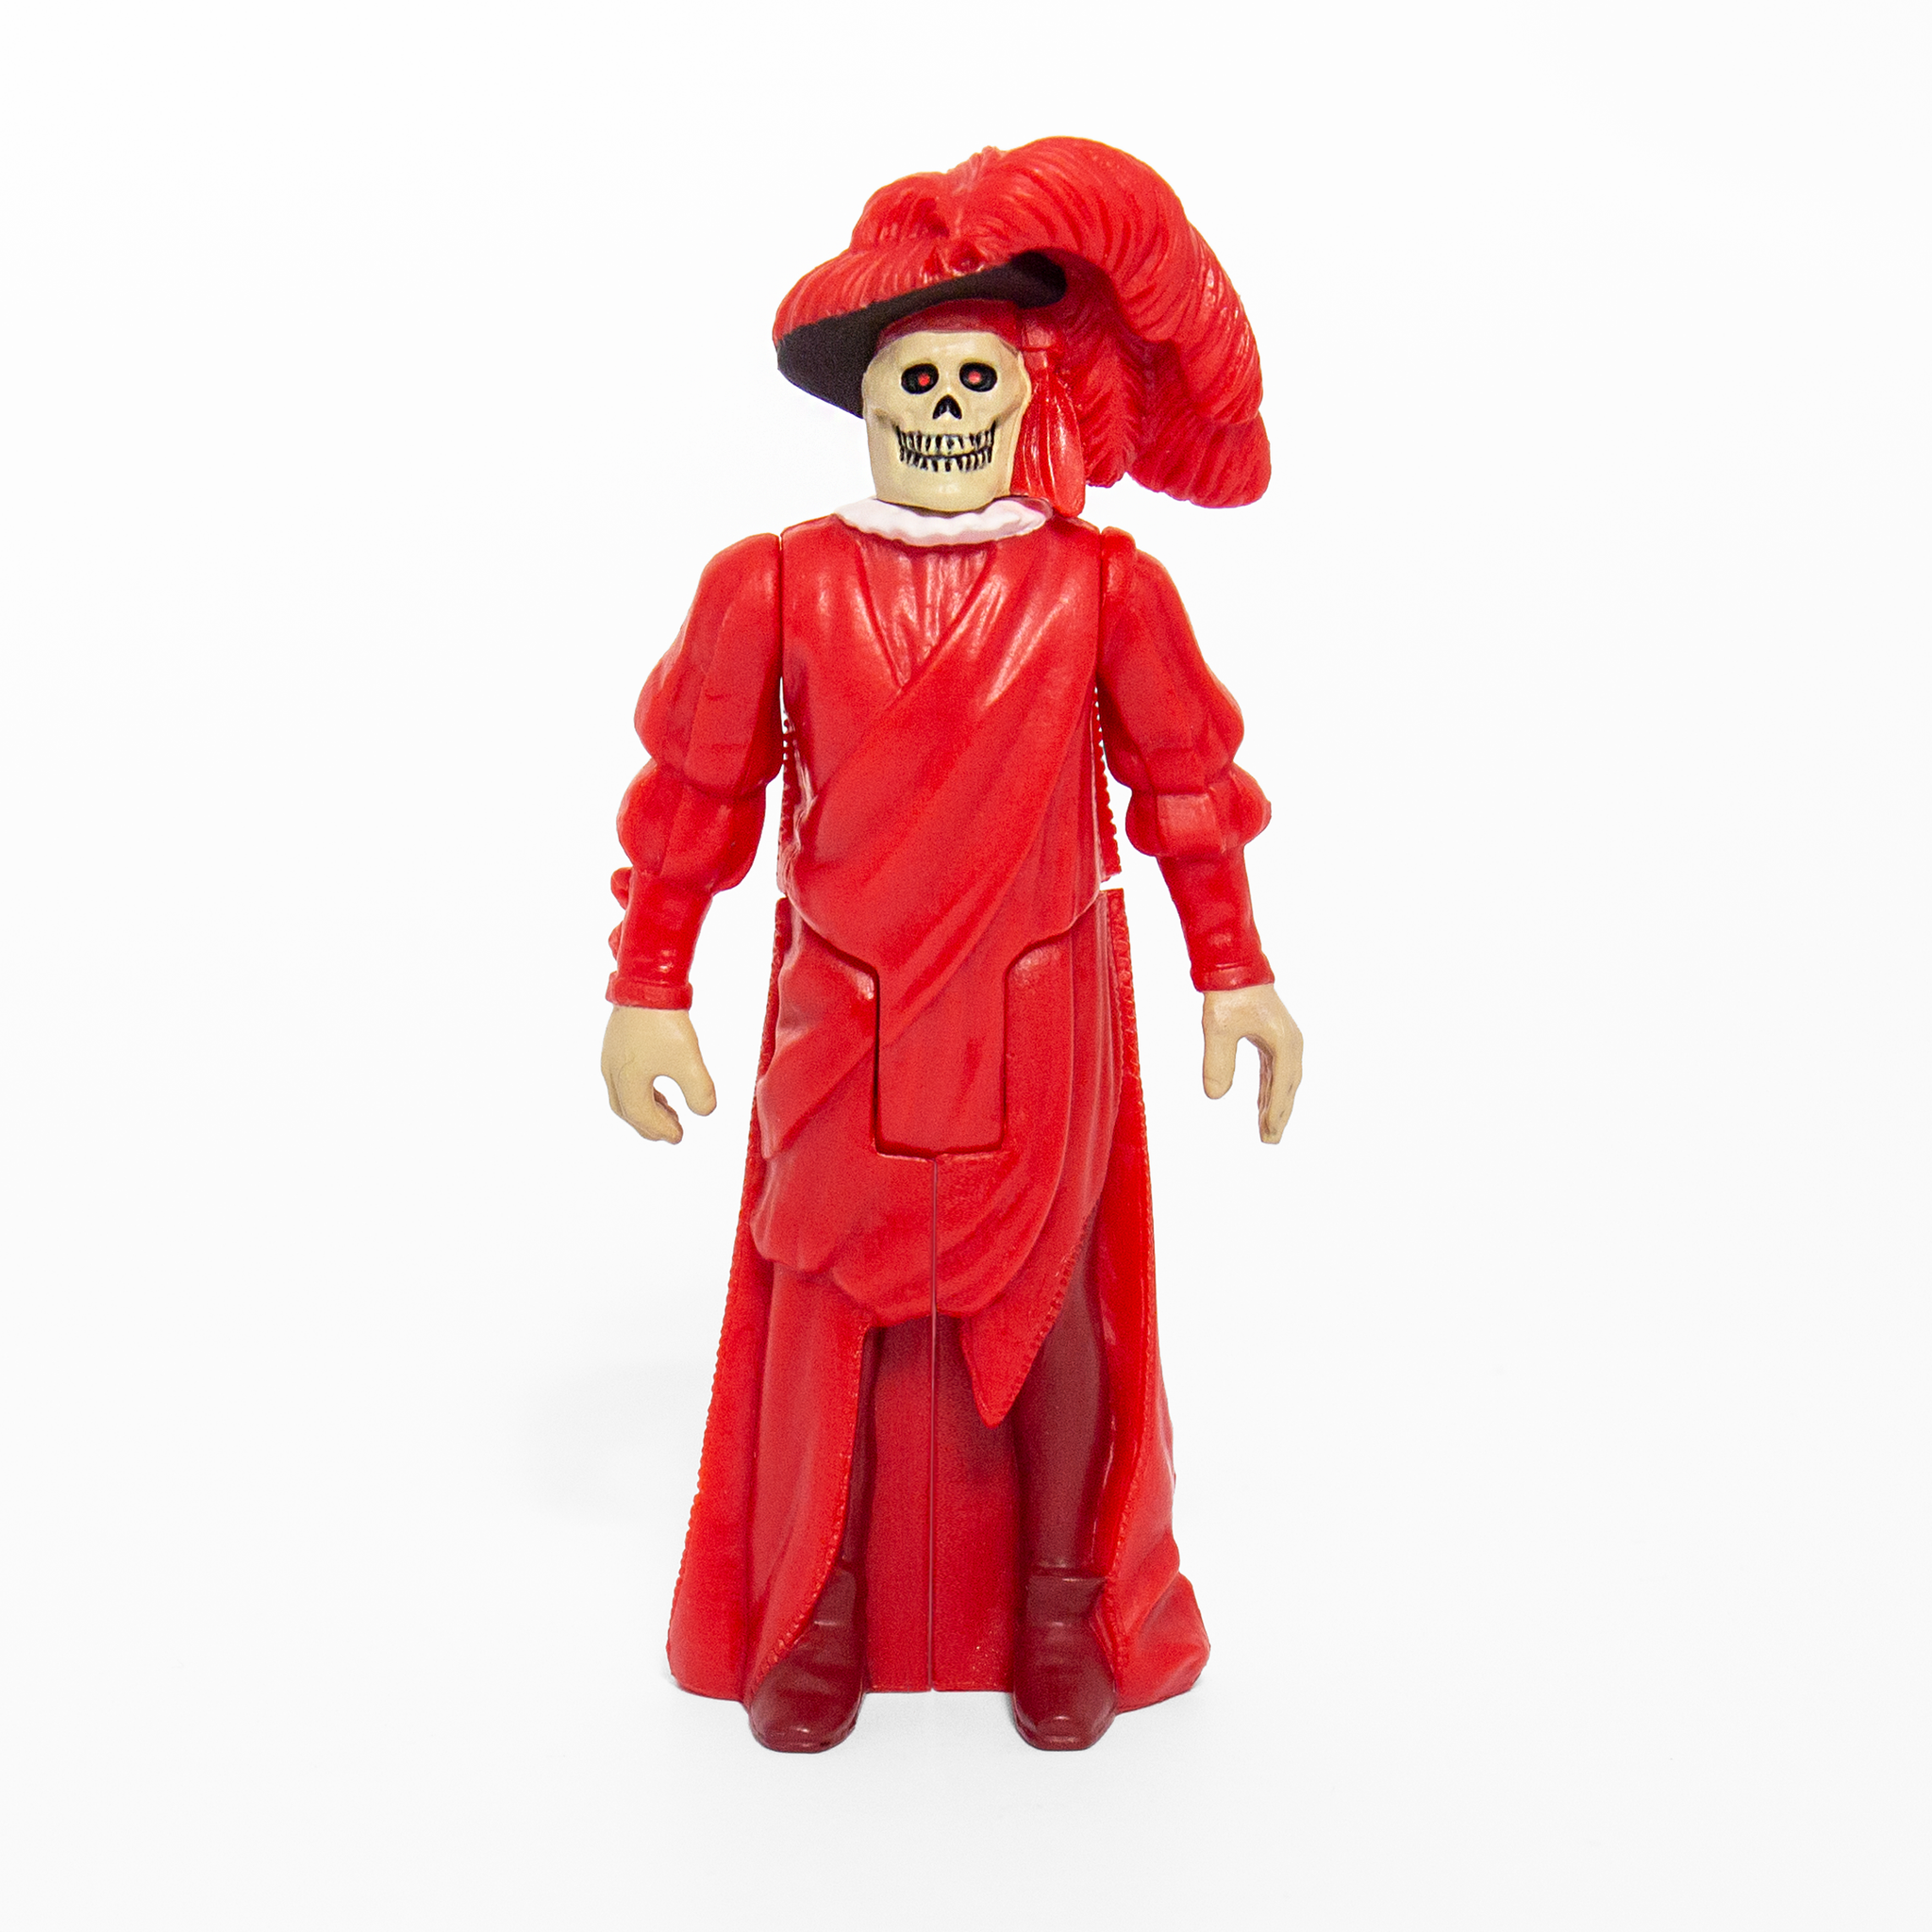 Universal Monsters Reaction Figure The Masque Of The Red Death Super7